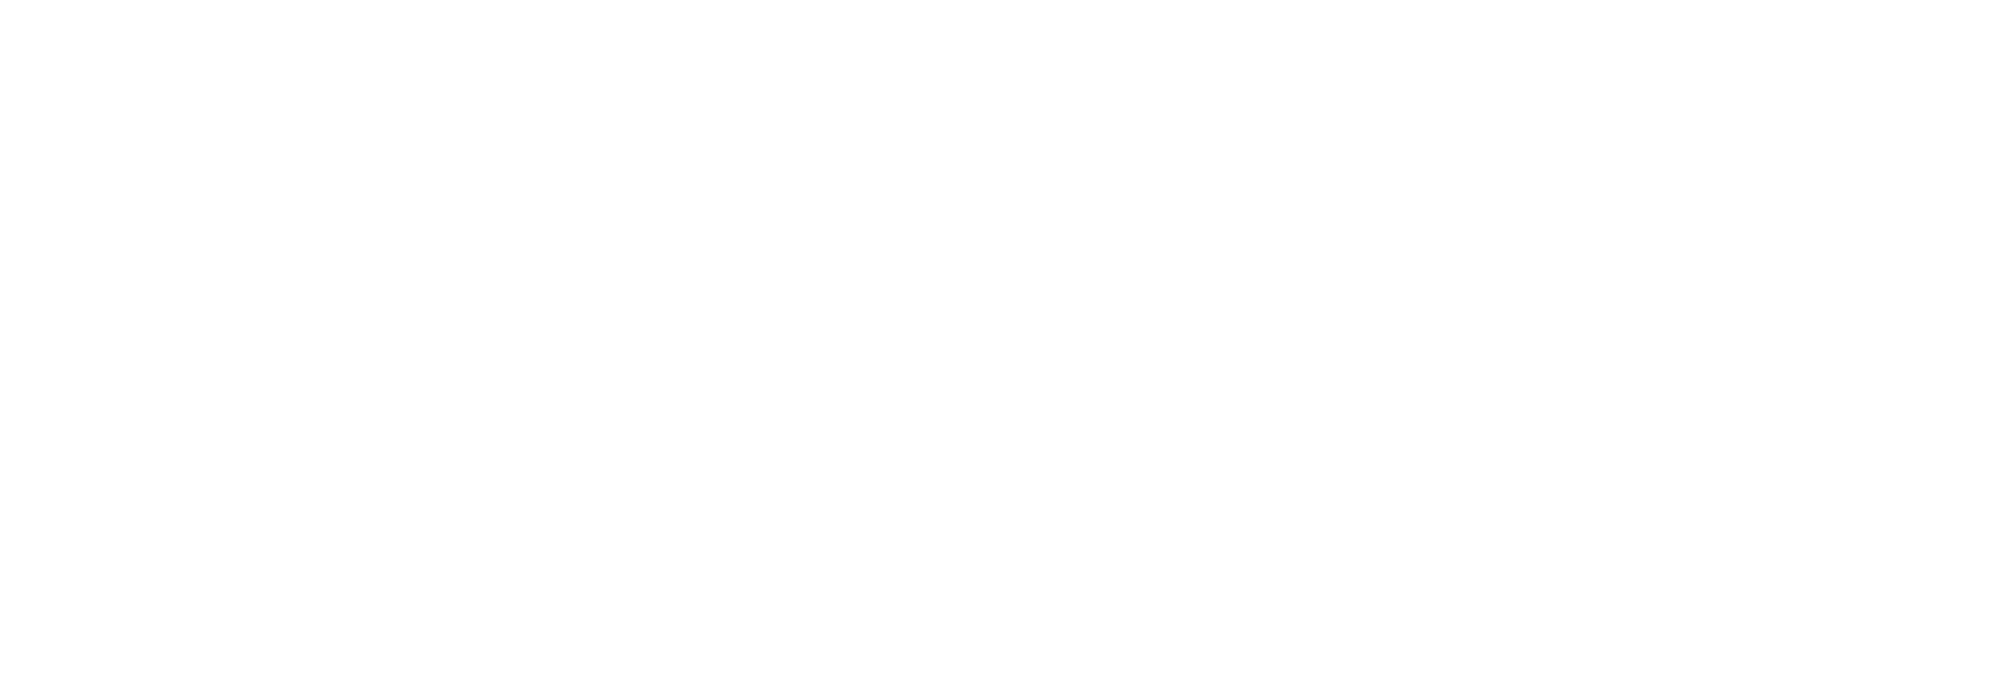 J&S Kitchen and Bath Designs Inc.-logo-white.png